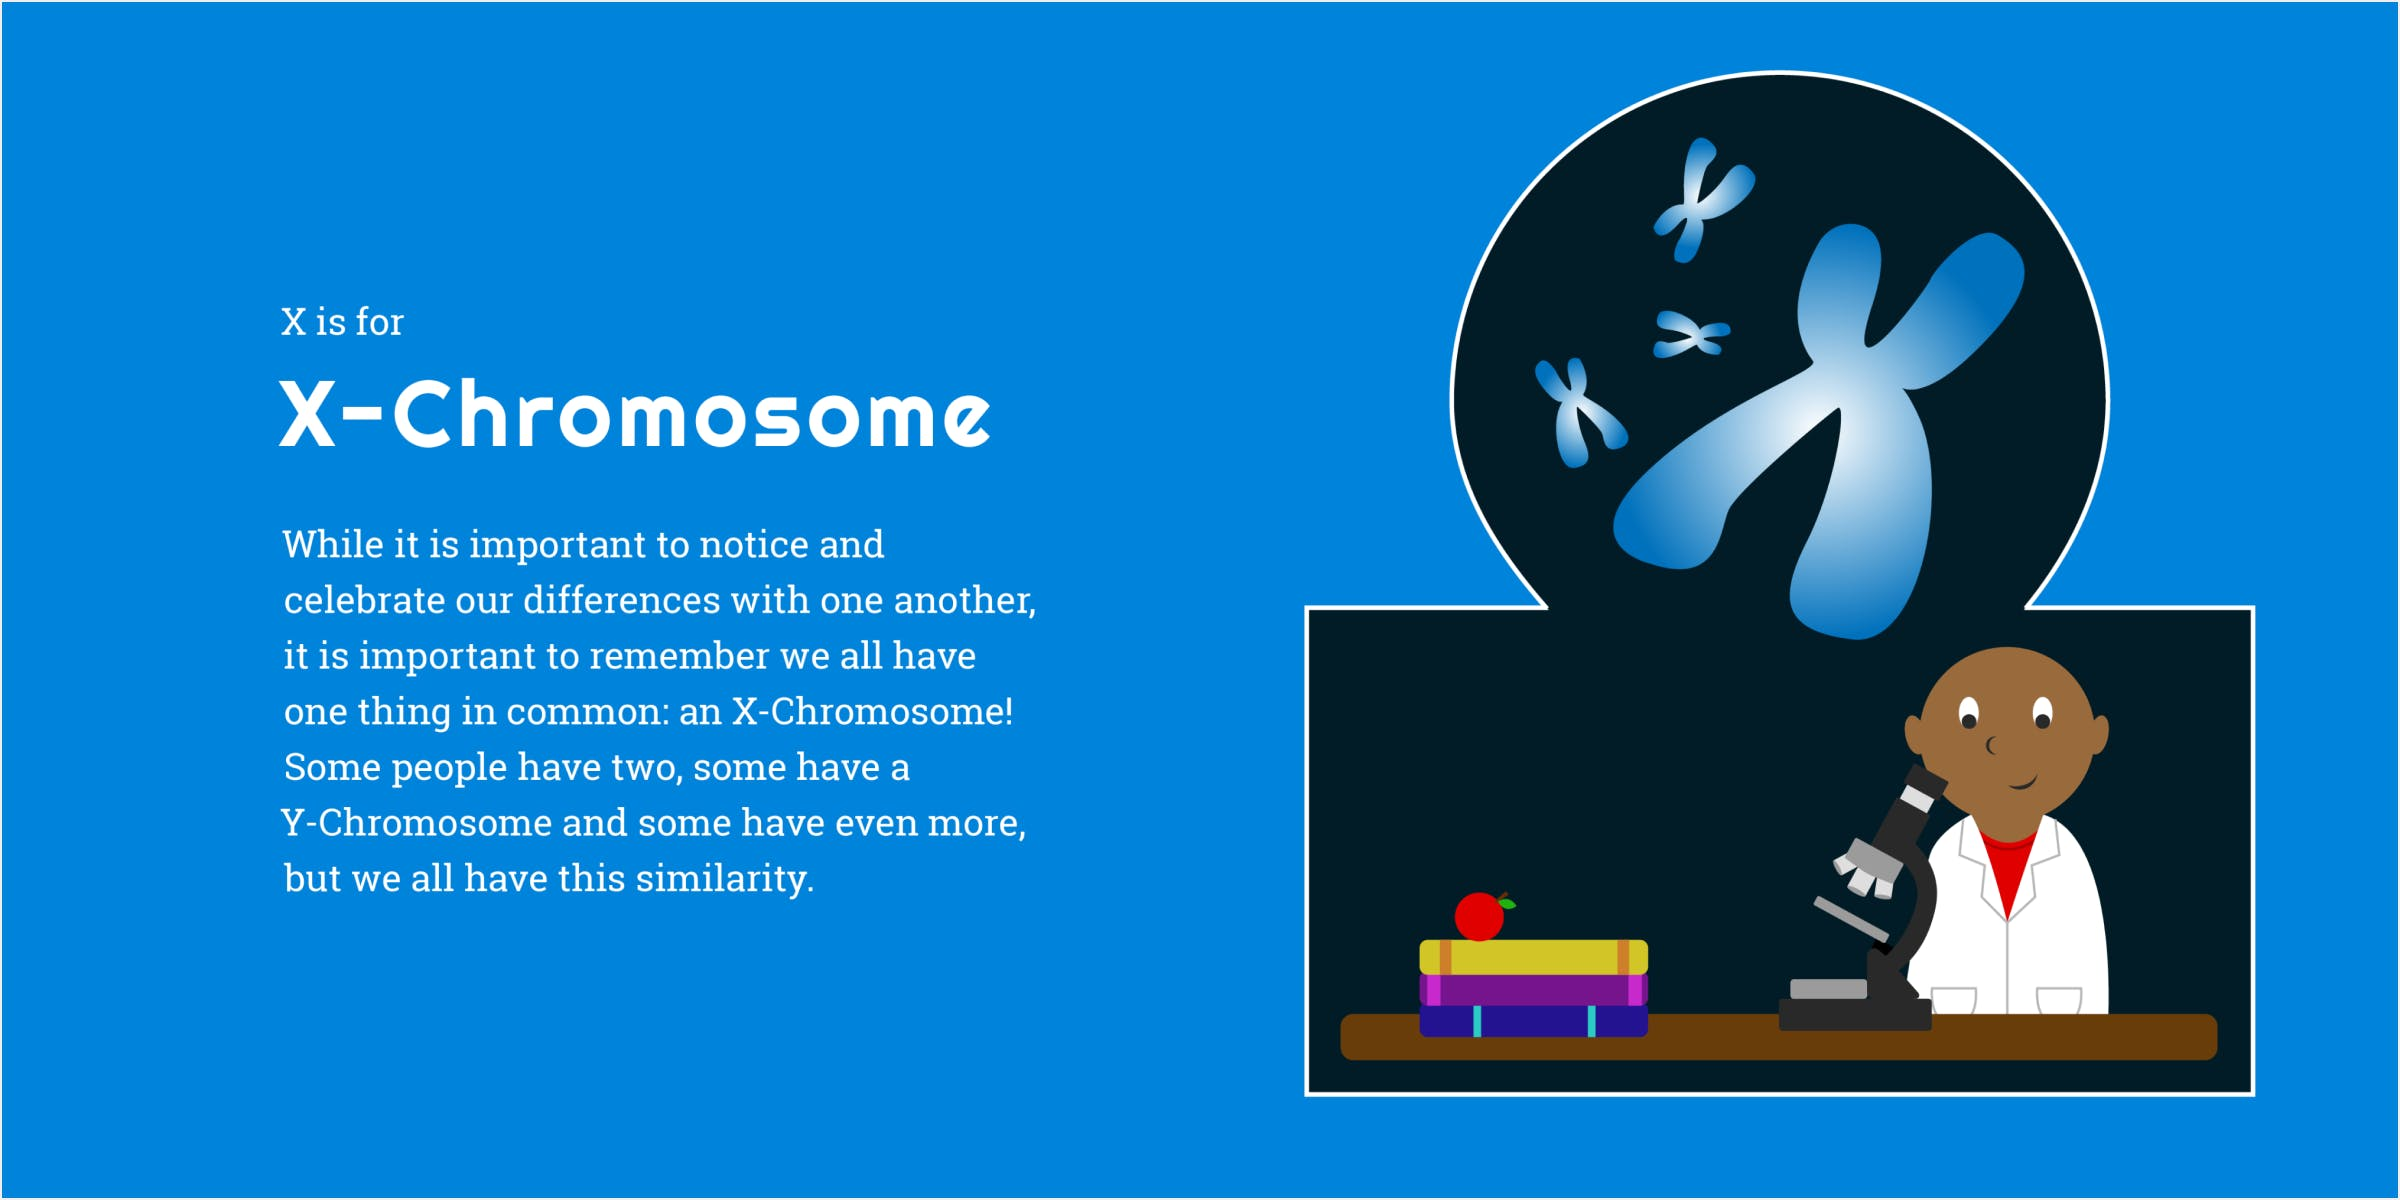 Mockup of x-chromosome spread in a book. A scientist at his desk looks in his microscope to reveal chromosomes.